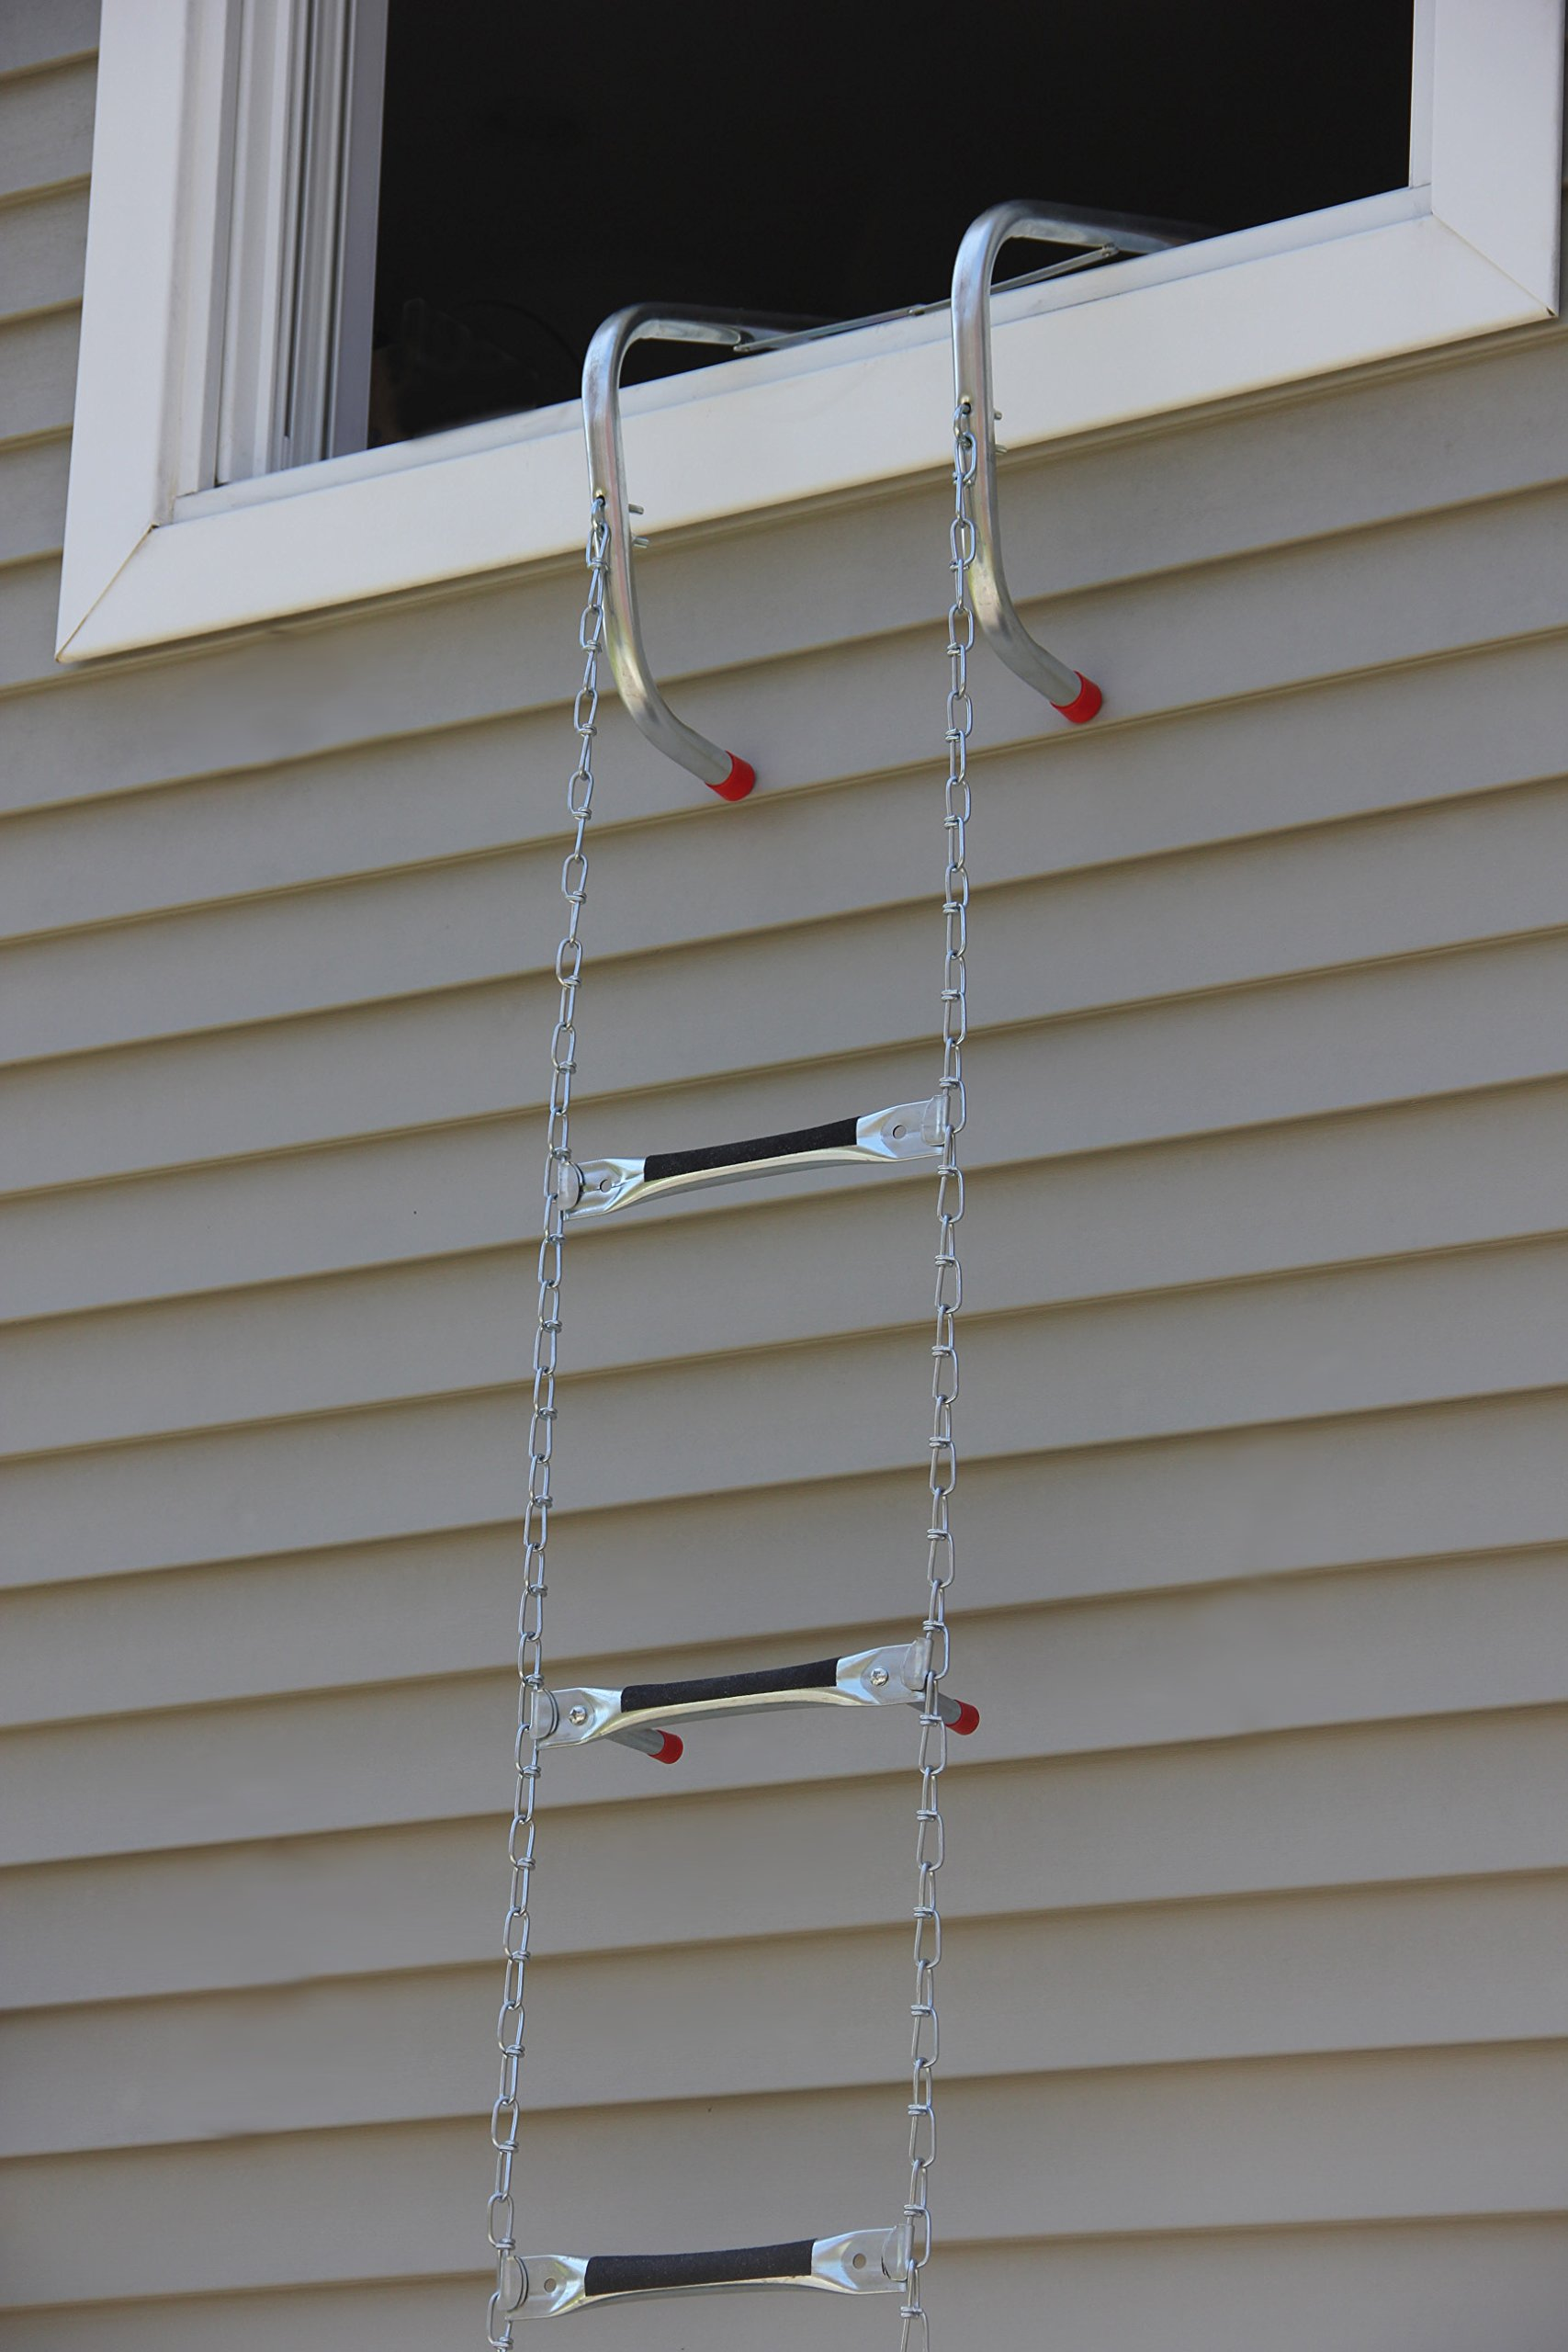 Saf-Escape - 3 Story 25 foot Portable Fire Escape Ladder 14'' Thick Wall - Tangle Free Steel Chain - model # 1625